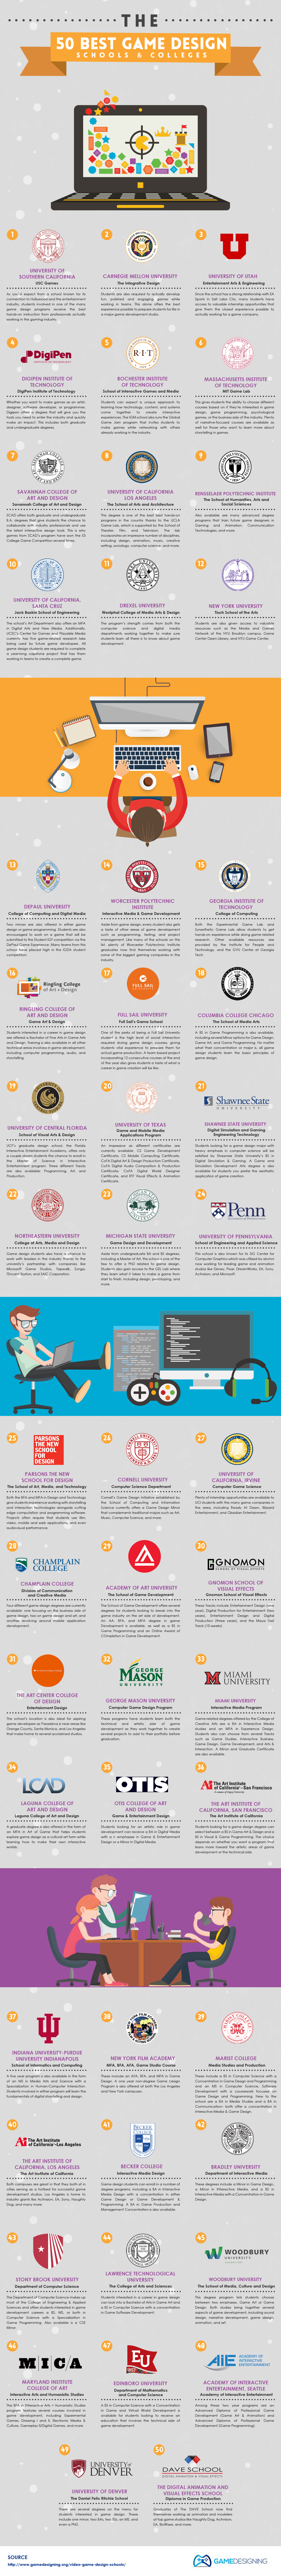 Infographic The Best Schools For Video Game Designers Game - Best video game design schools